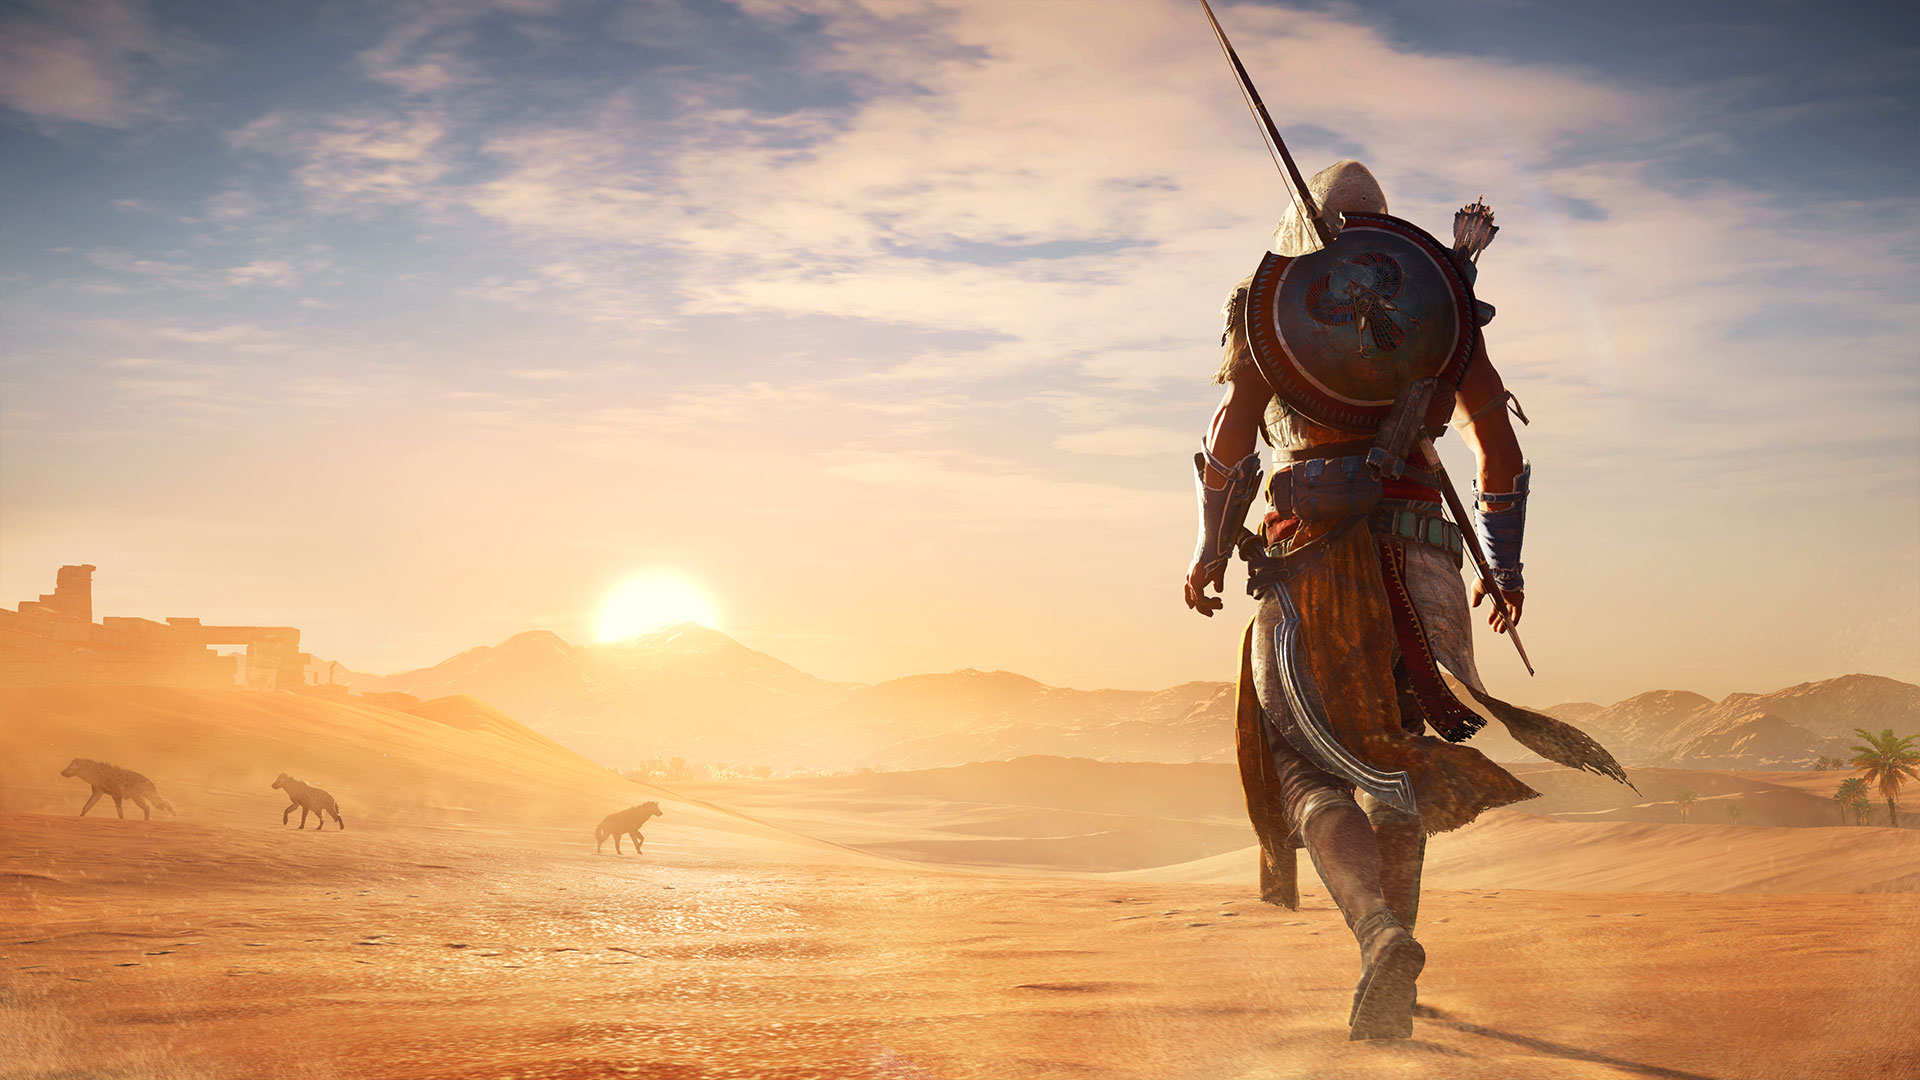 Scene group removes Denuvo and VMProtect from Assassin's Creed: Origins